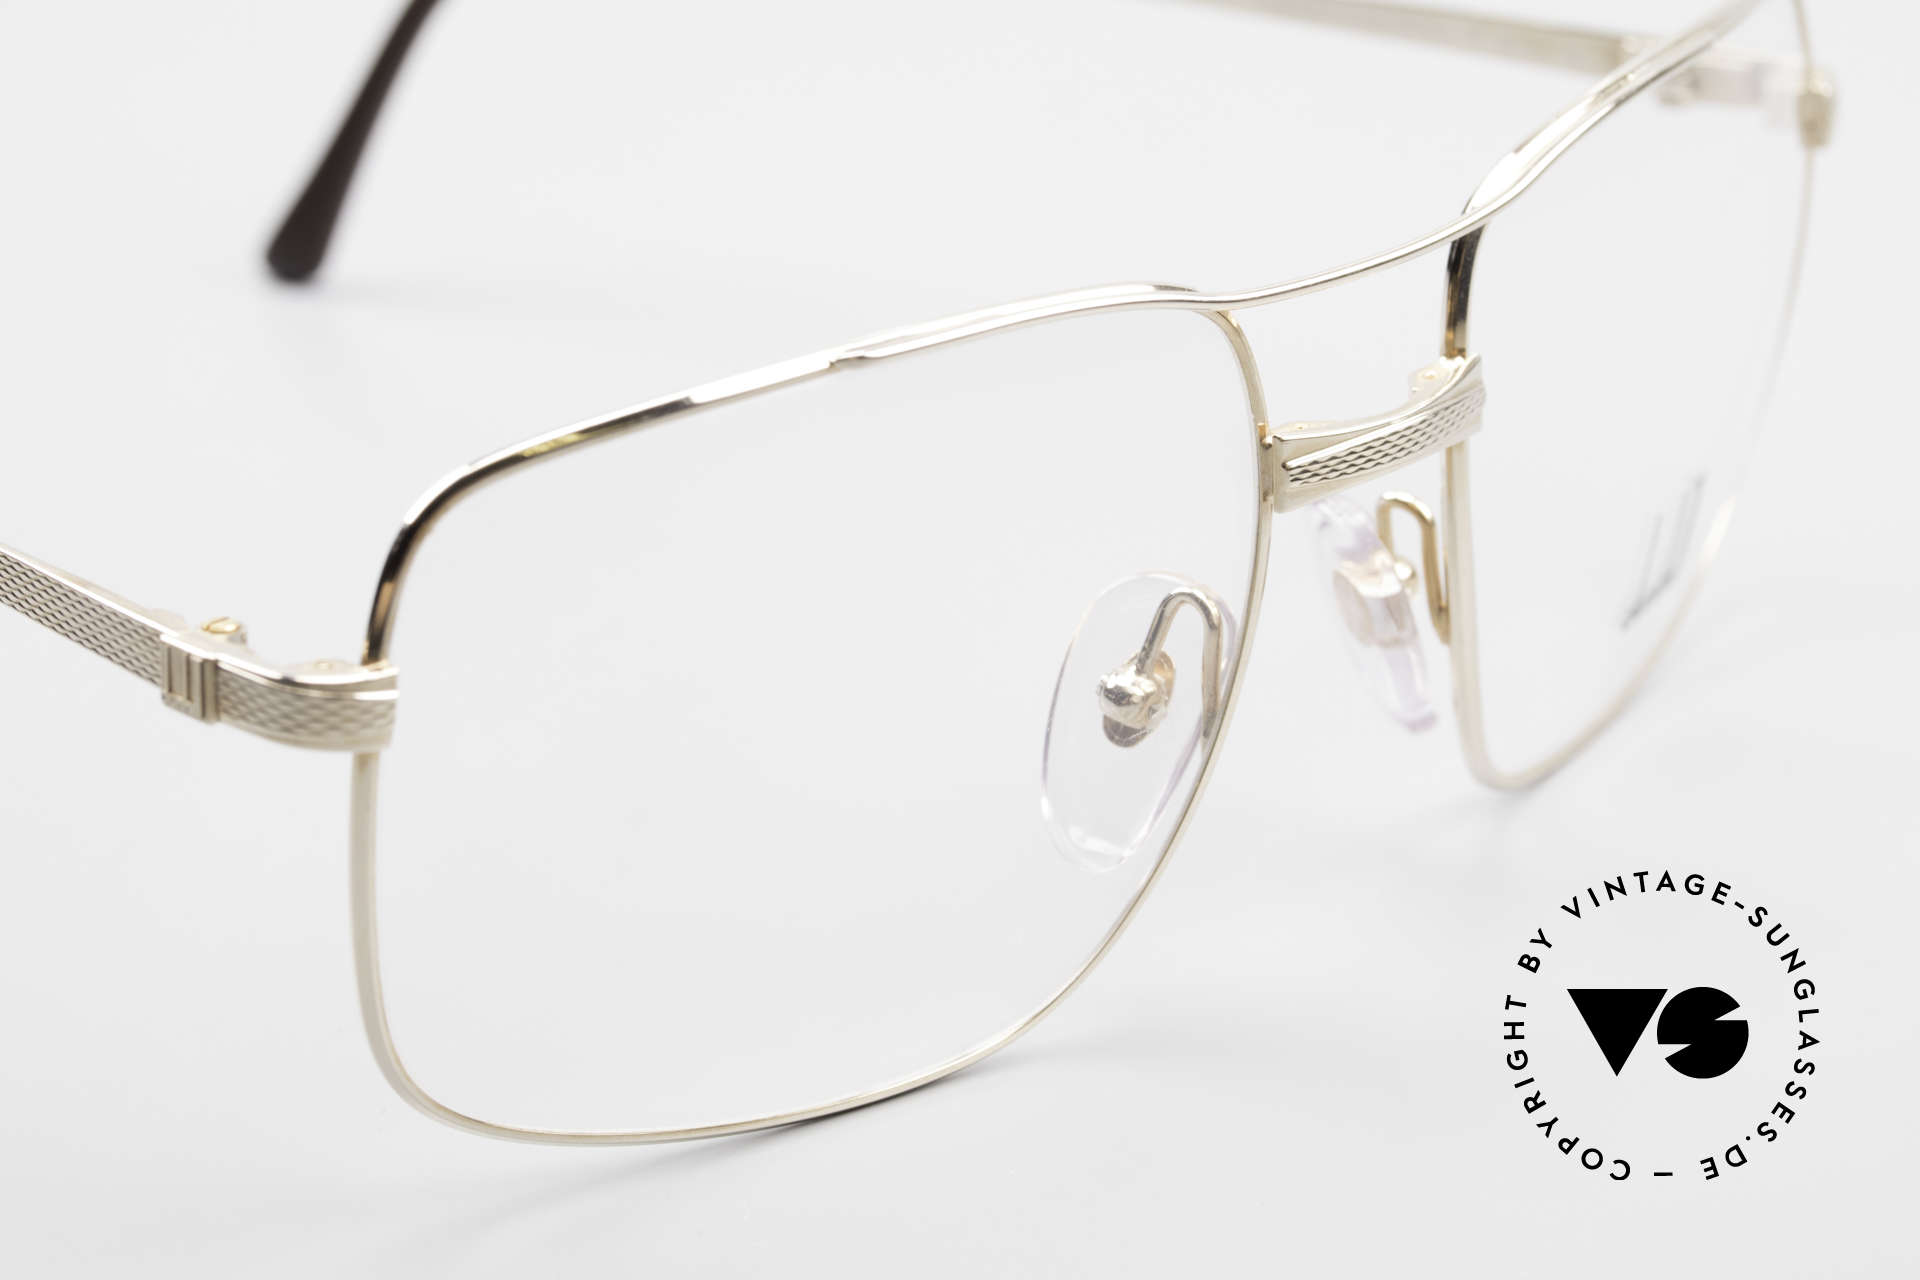 Dunhill 6048 Gold Plated 80's Eyeglasses, unworn rarity (like all our 80s Dunhill vintage specs), Made for Men